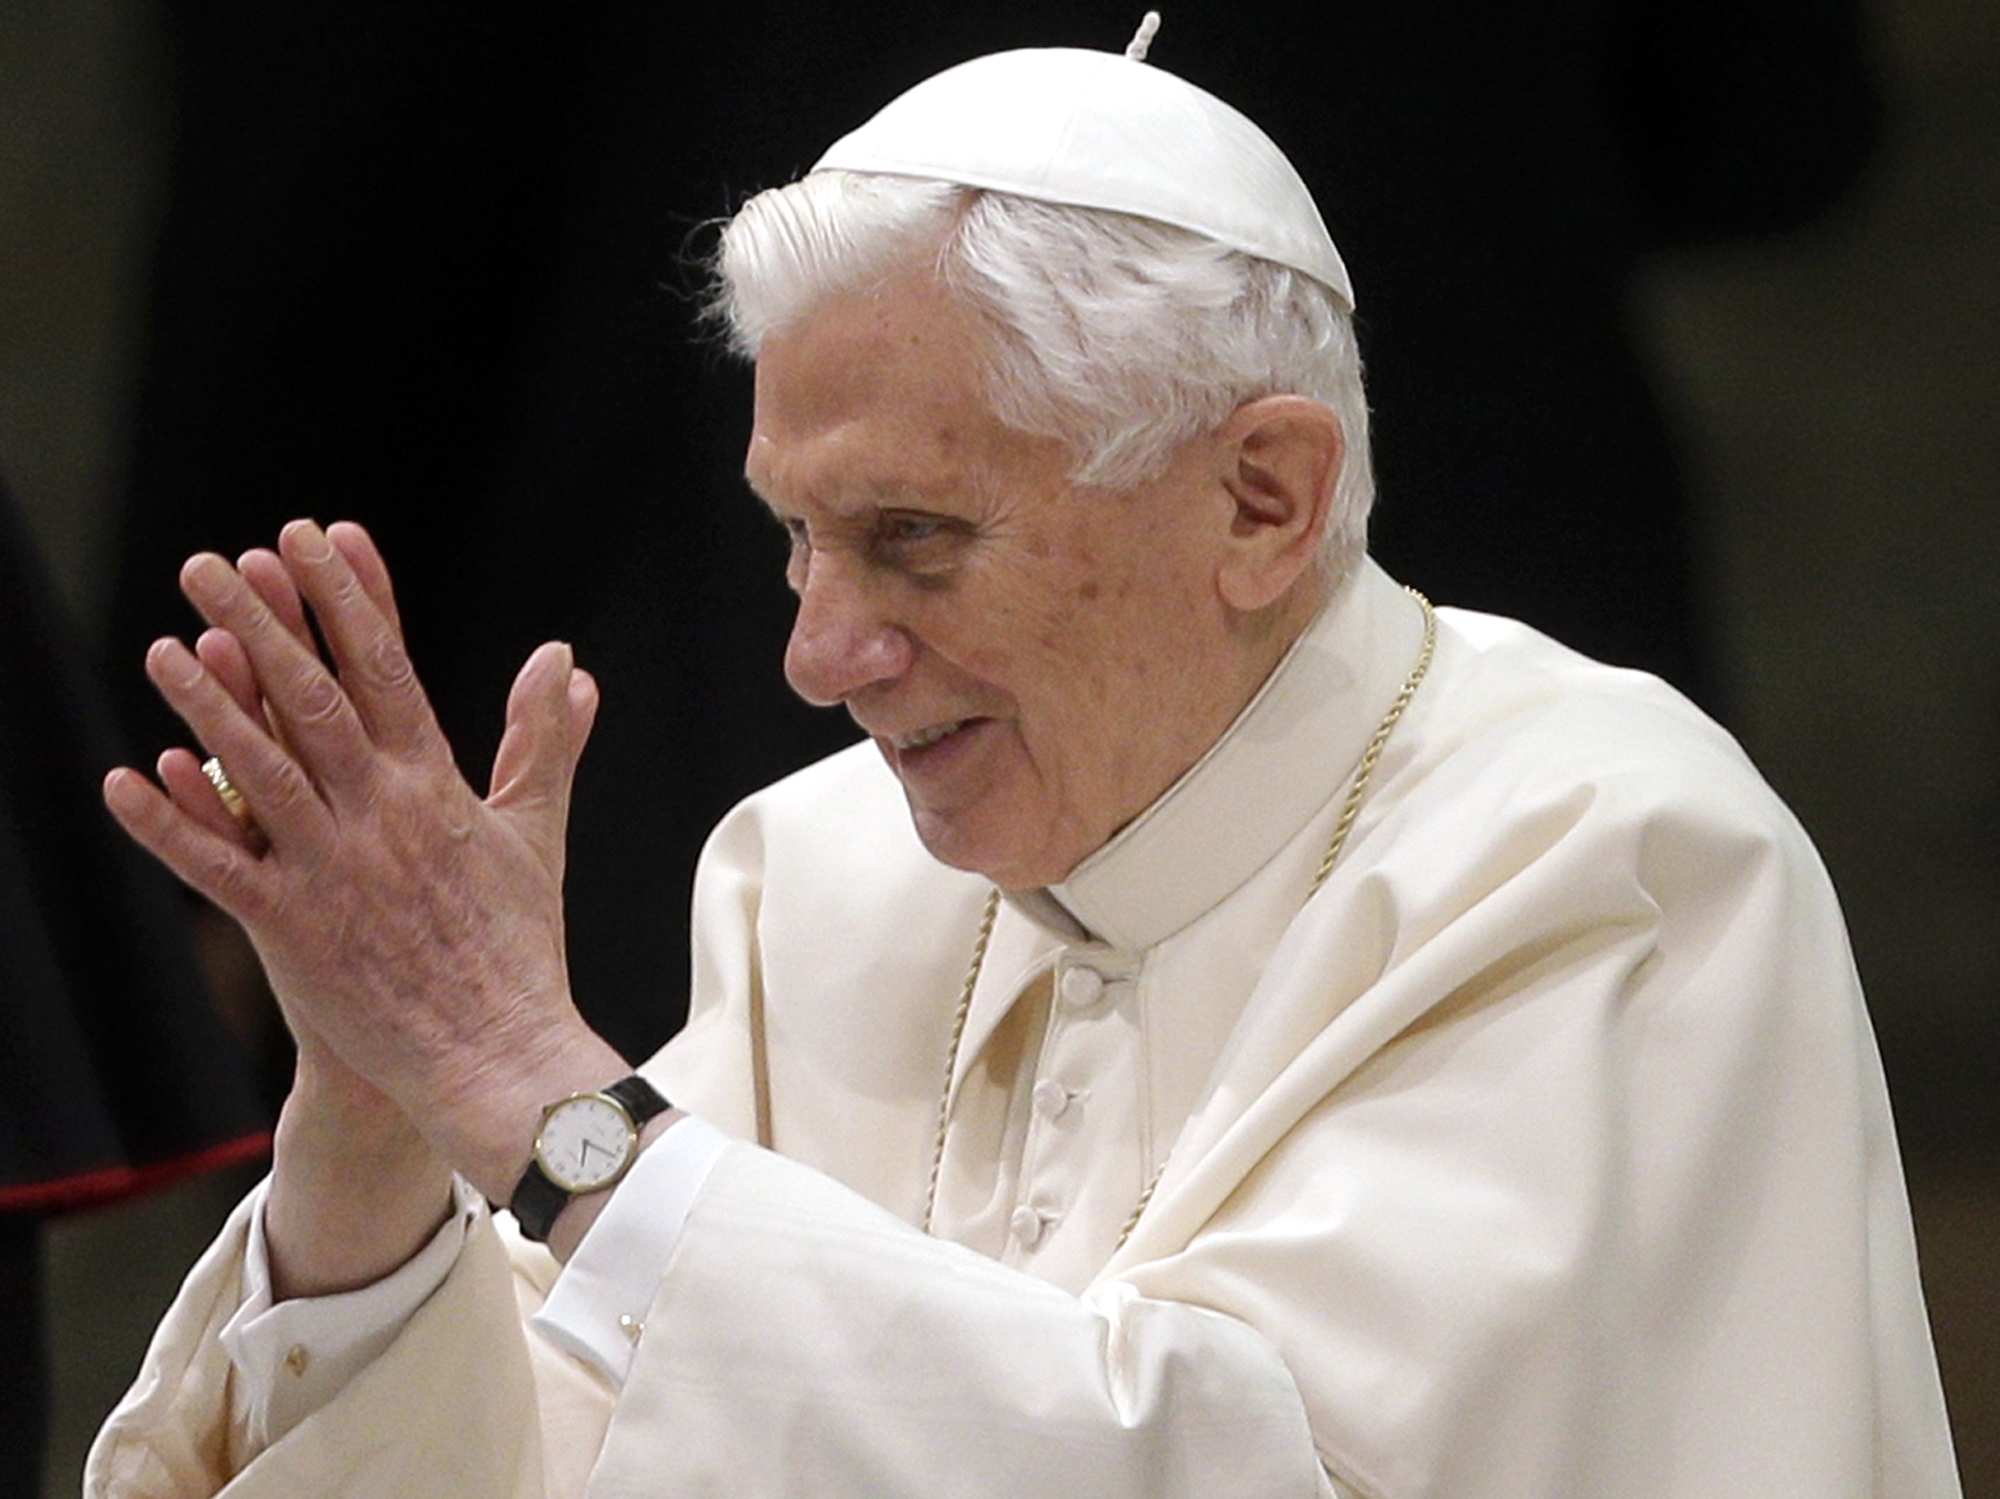 Pope Benedict XVI arrives for his weekly general audience Wednesday Feb. 13, 2013. (AP Photo/Alessandra Tarantino)